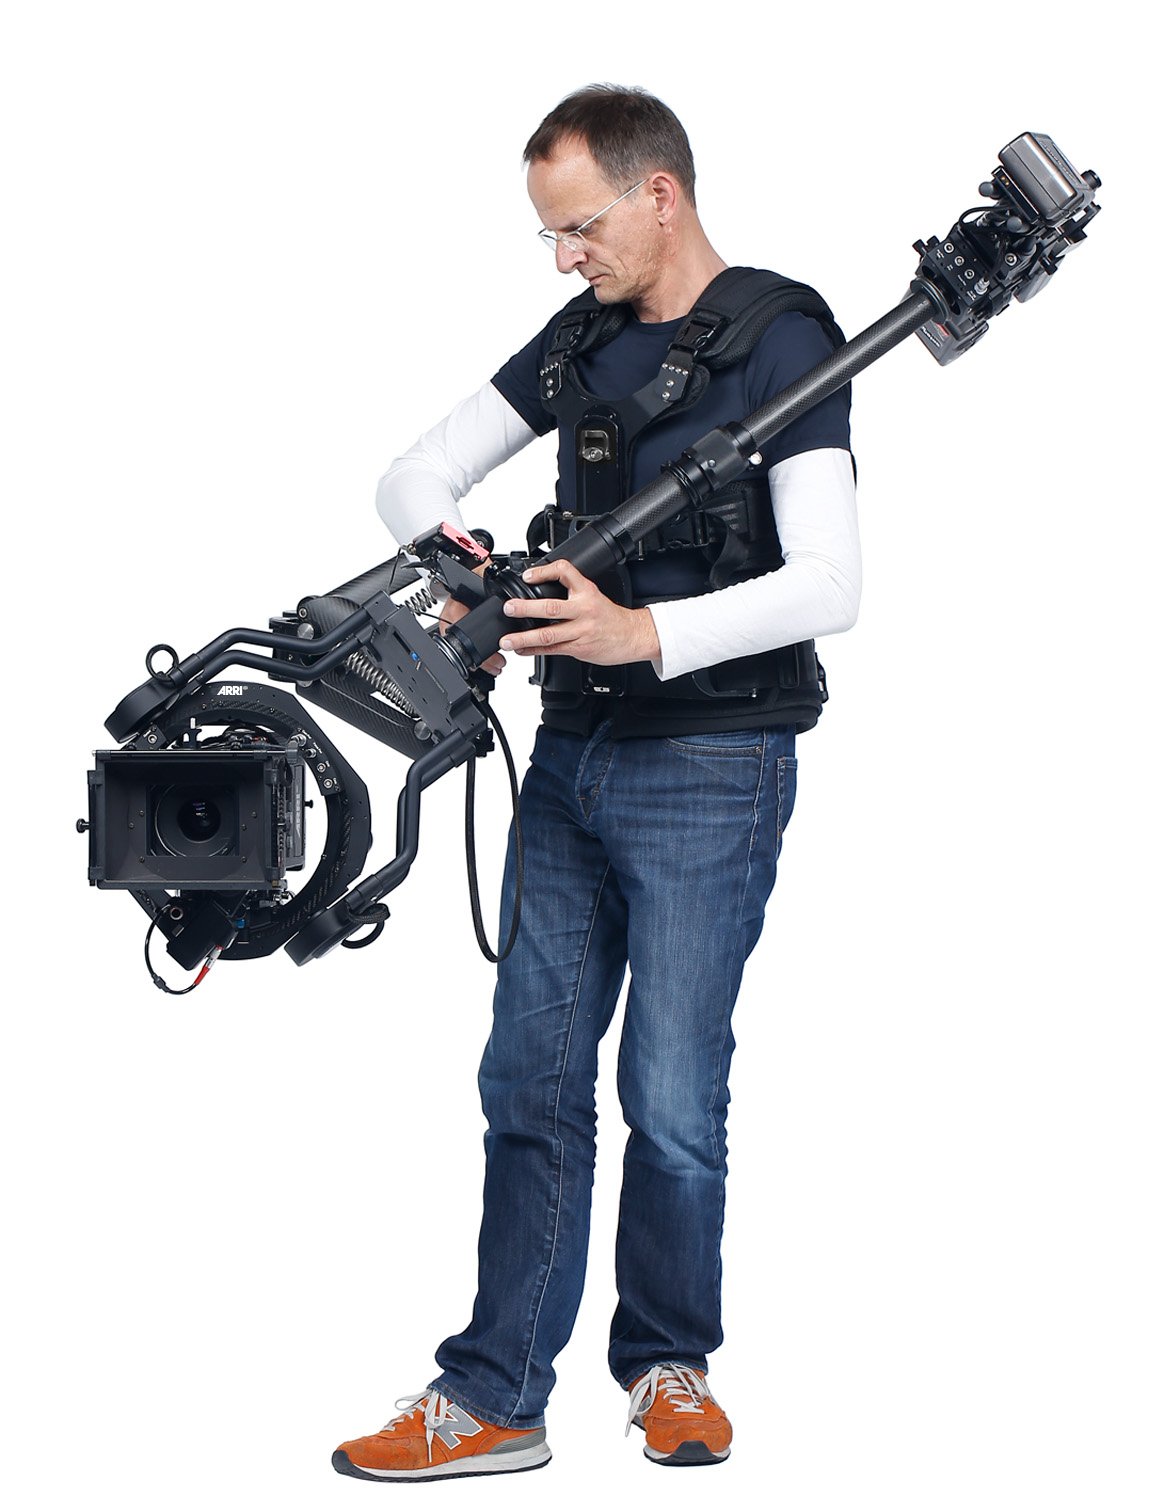 While Trinity works especially well in a compact configuration with the ALEXA Mini, its 30 kg / 66lb. maximum payload and height adjustability mean that larger cameras and heavy lenses can also be supported.